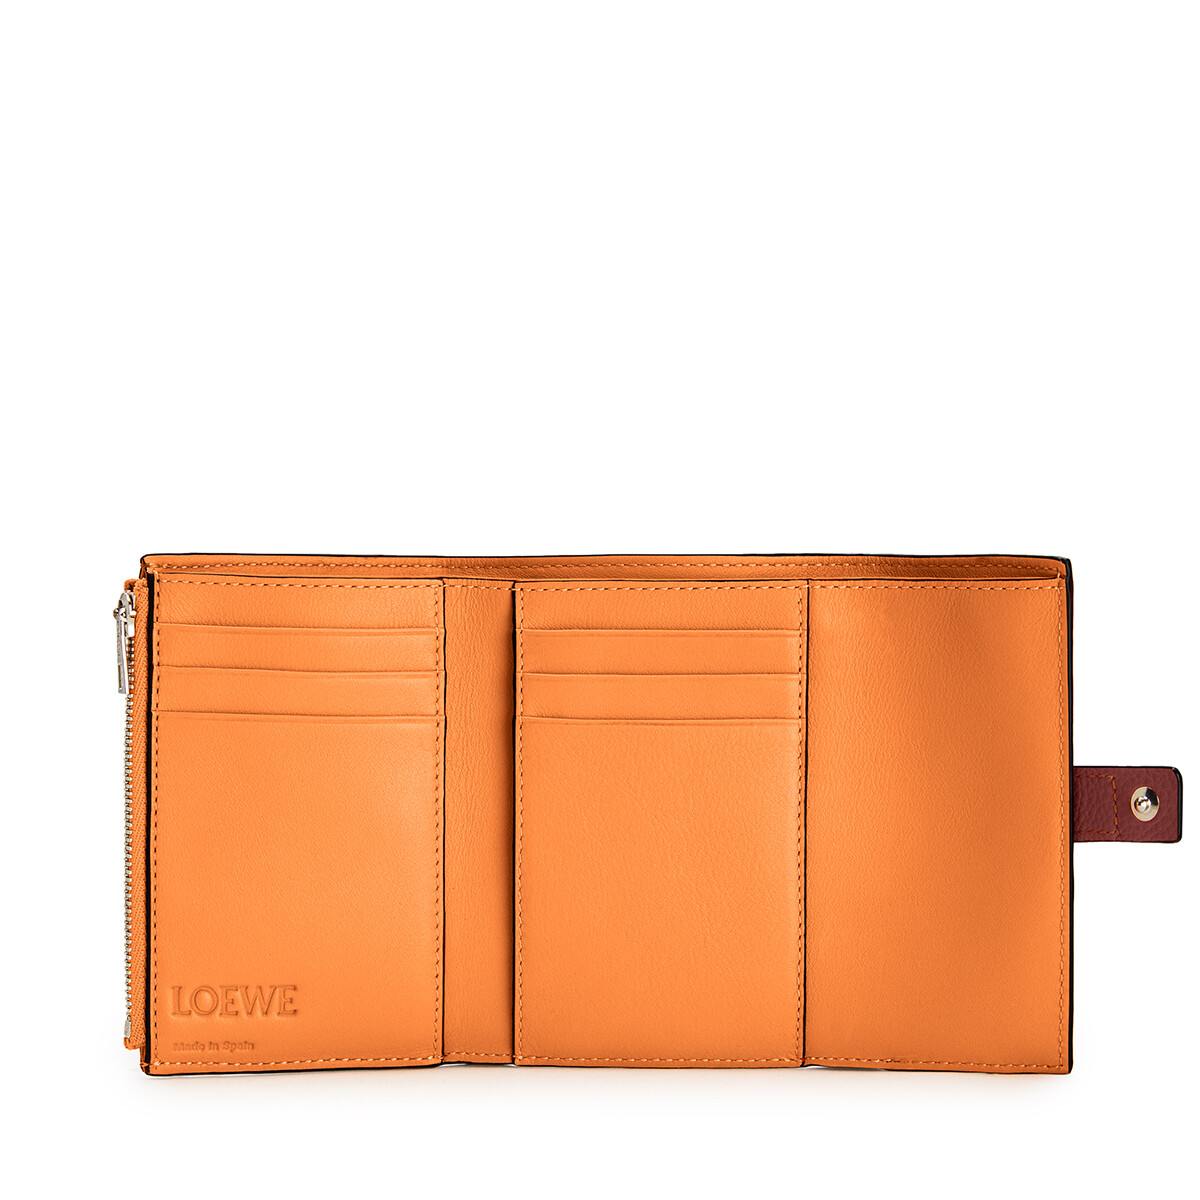 LOEWE 小号垂直钱包 Coral/Soft Apricot front